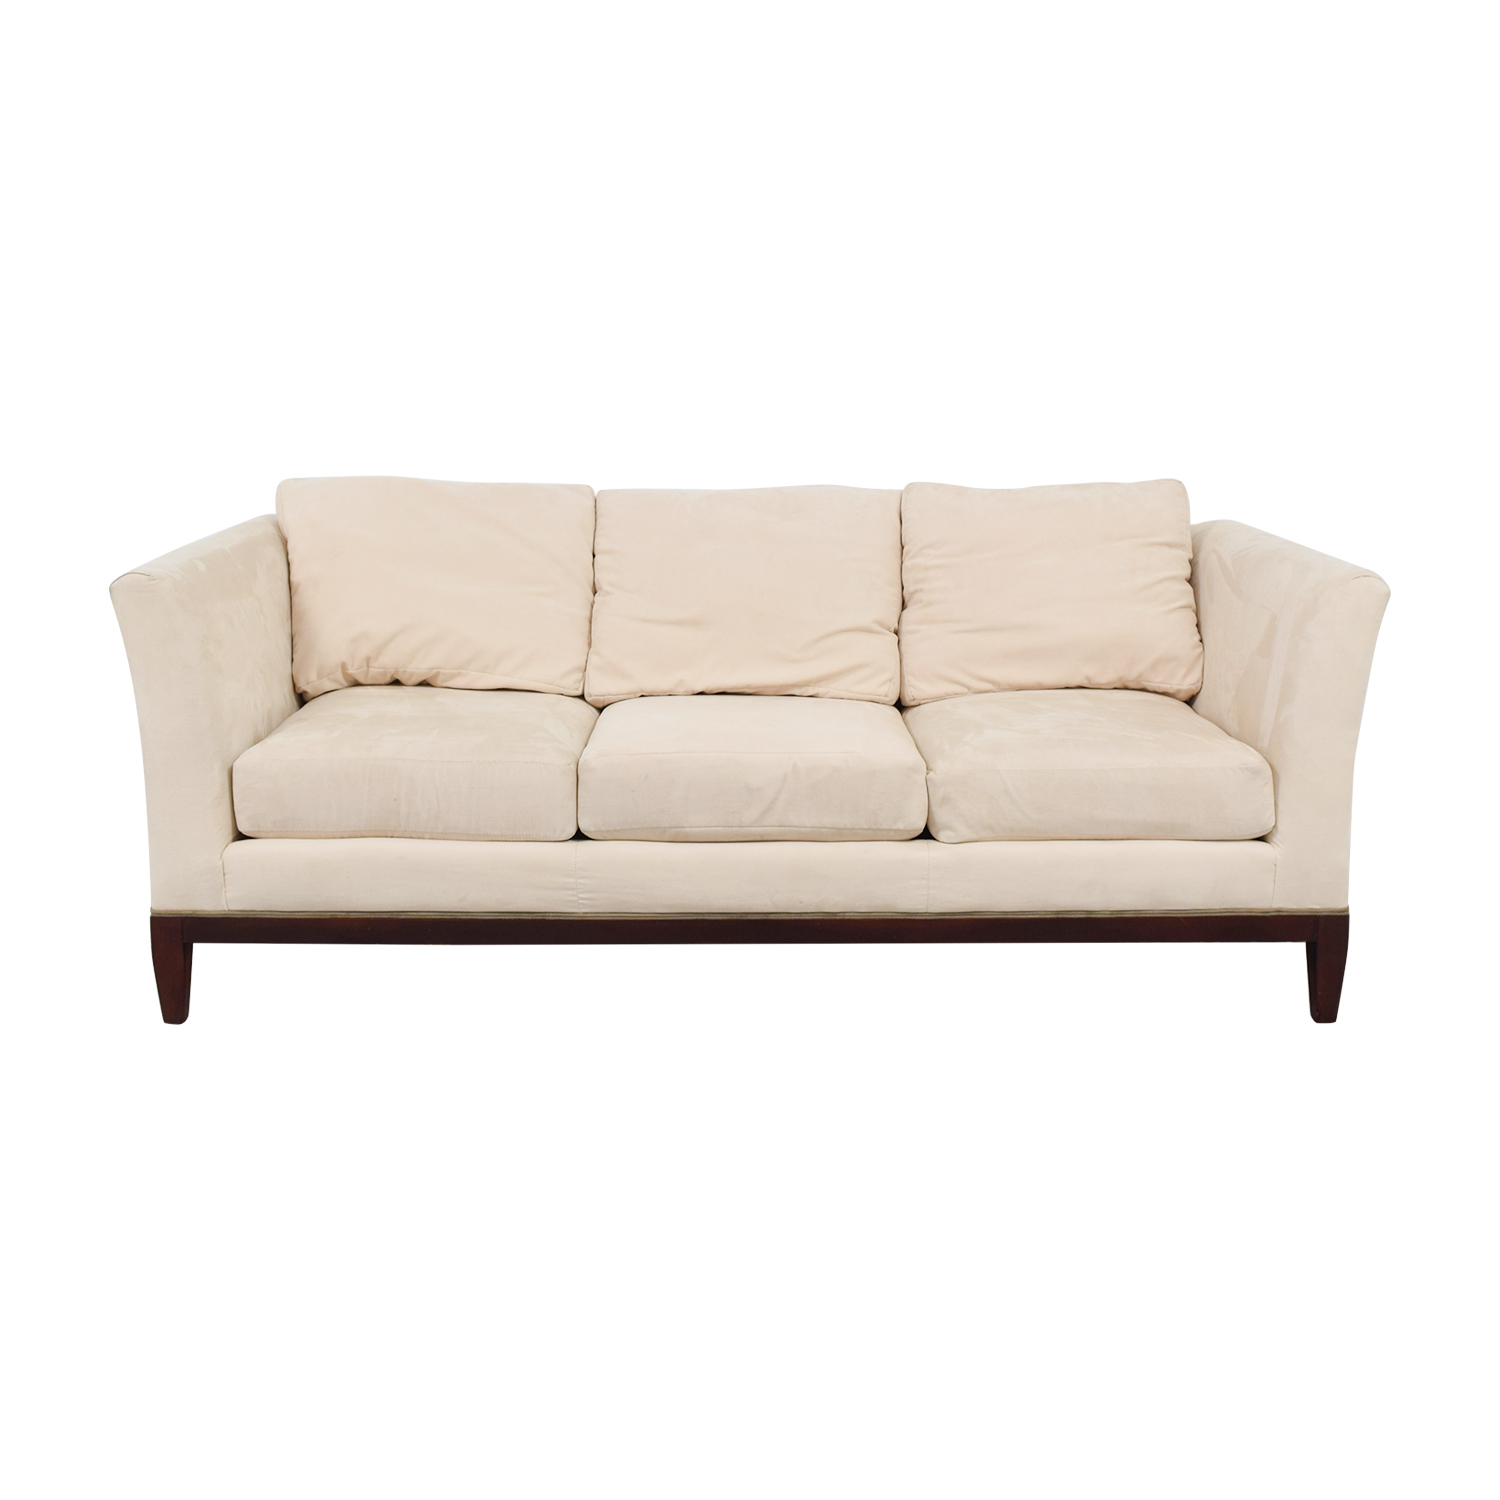 Woodmark Woodmark White Three-Cushion Sofa used